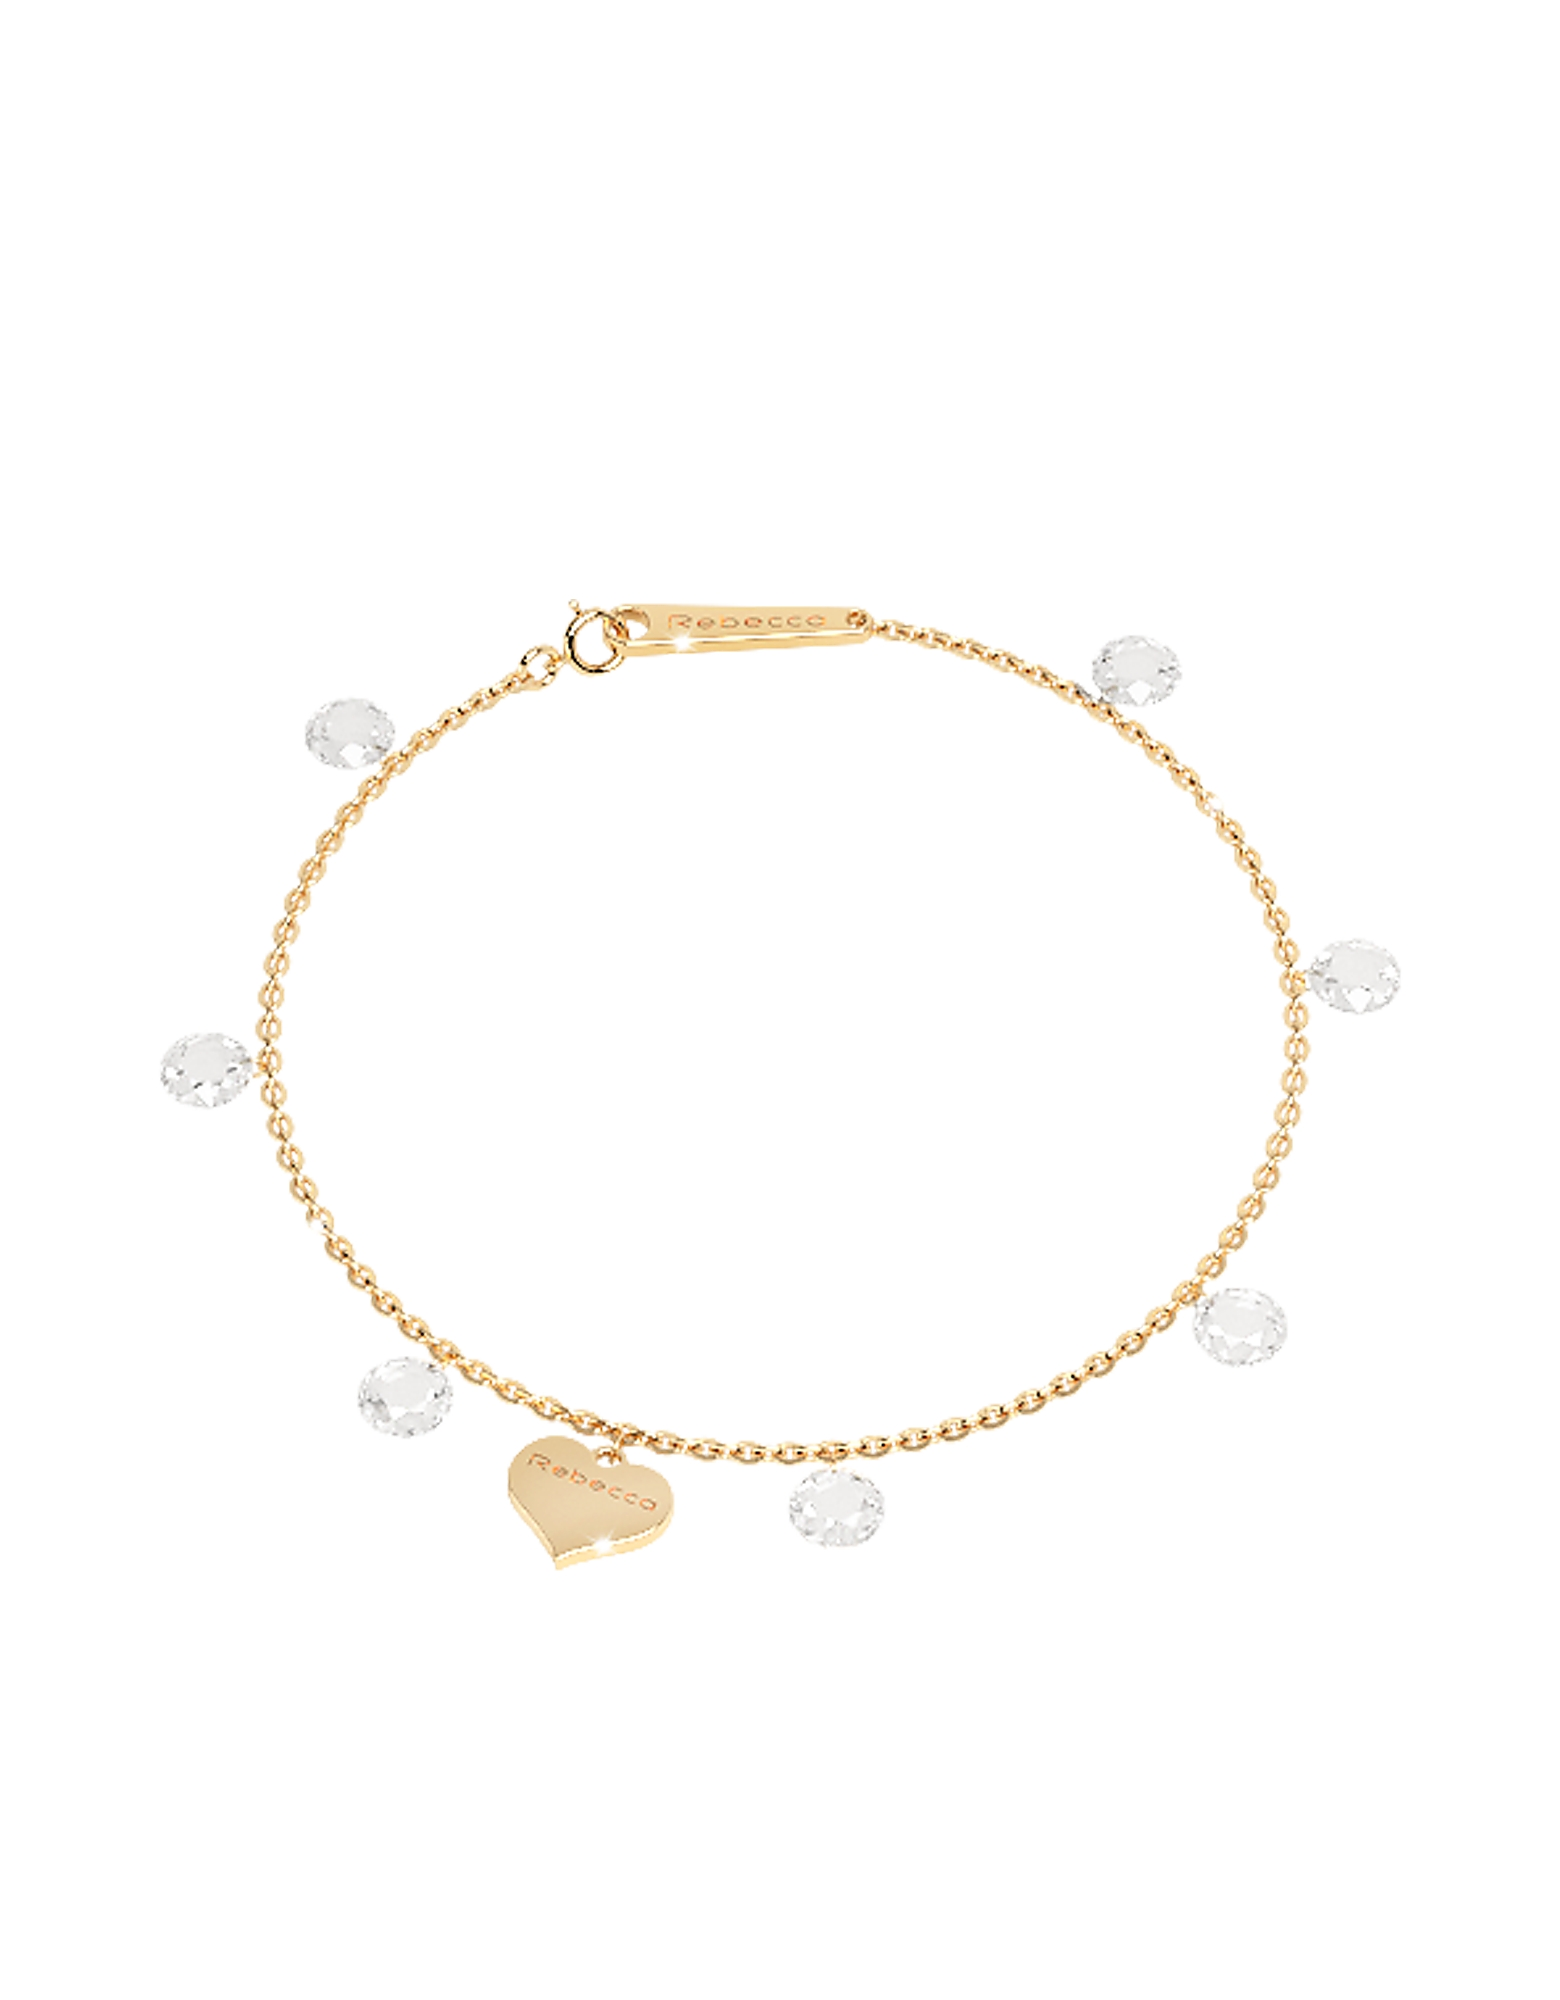 Lucciole Sterling Silver Gold Plated Bracelet w/Crystals